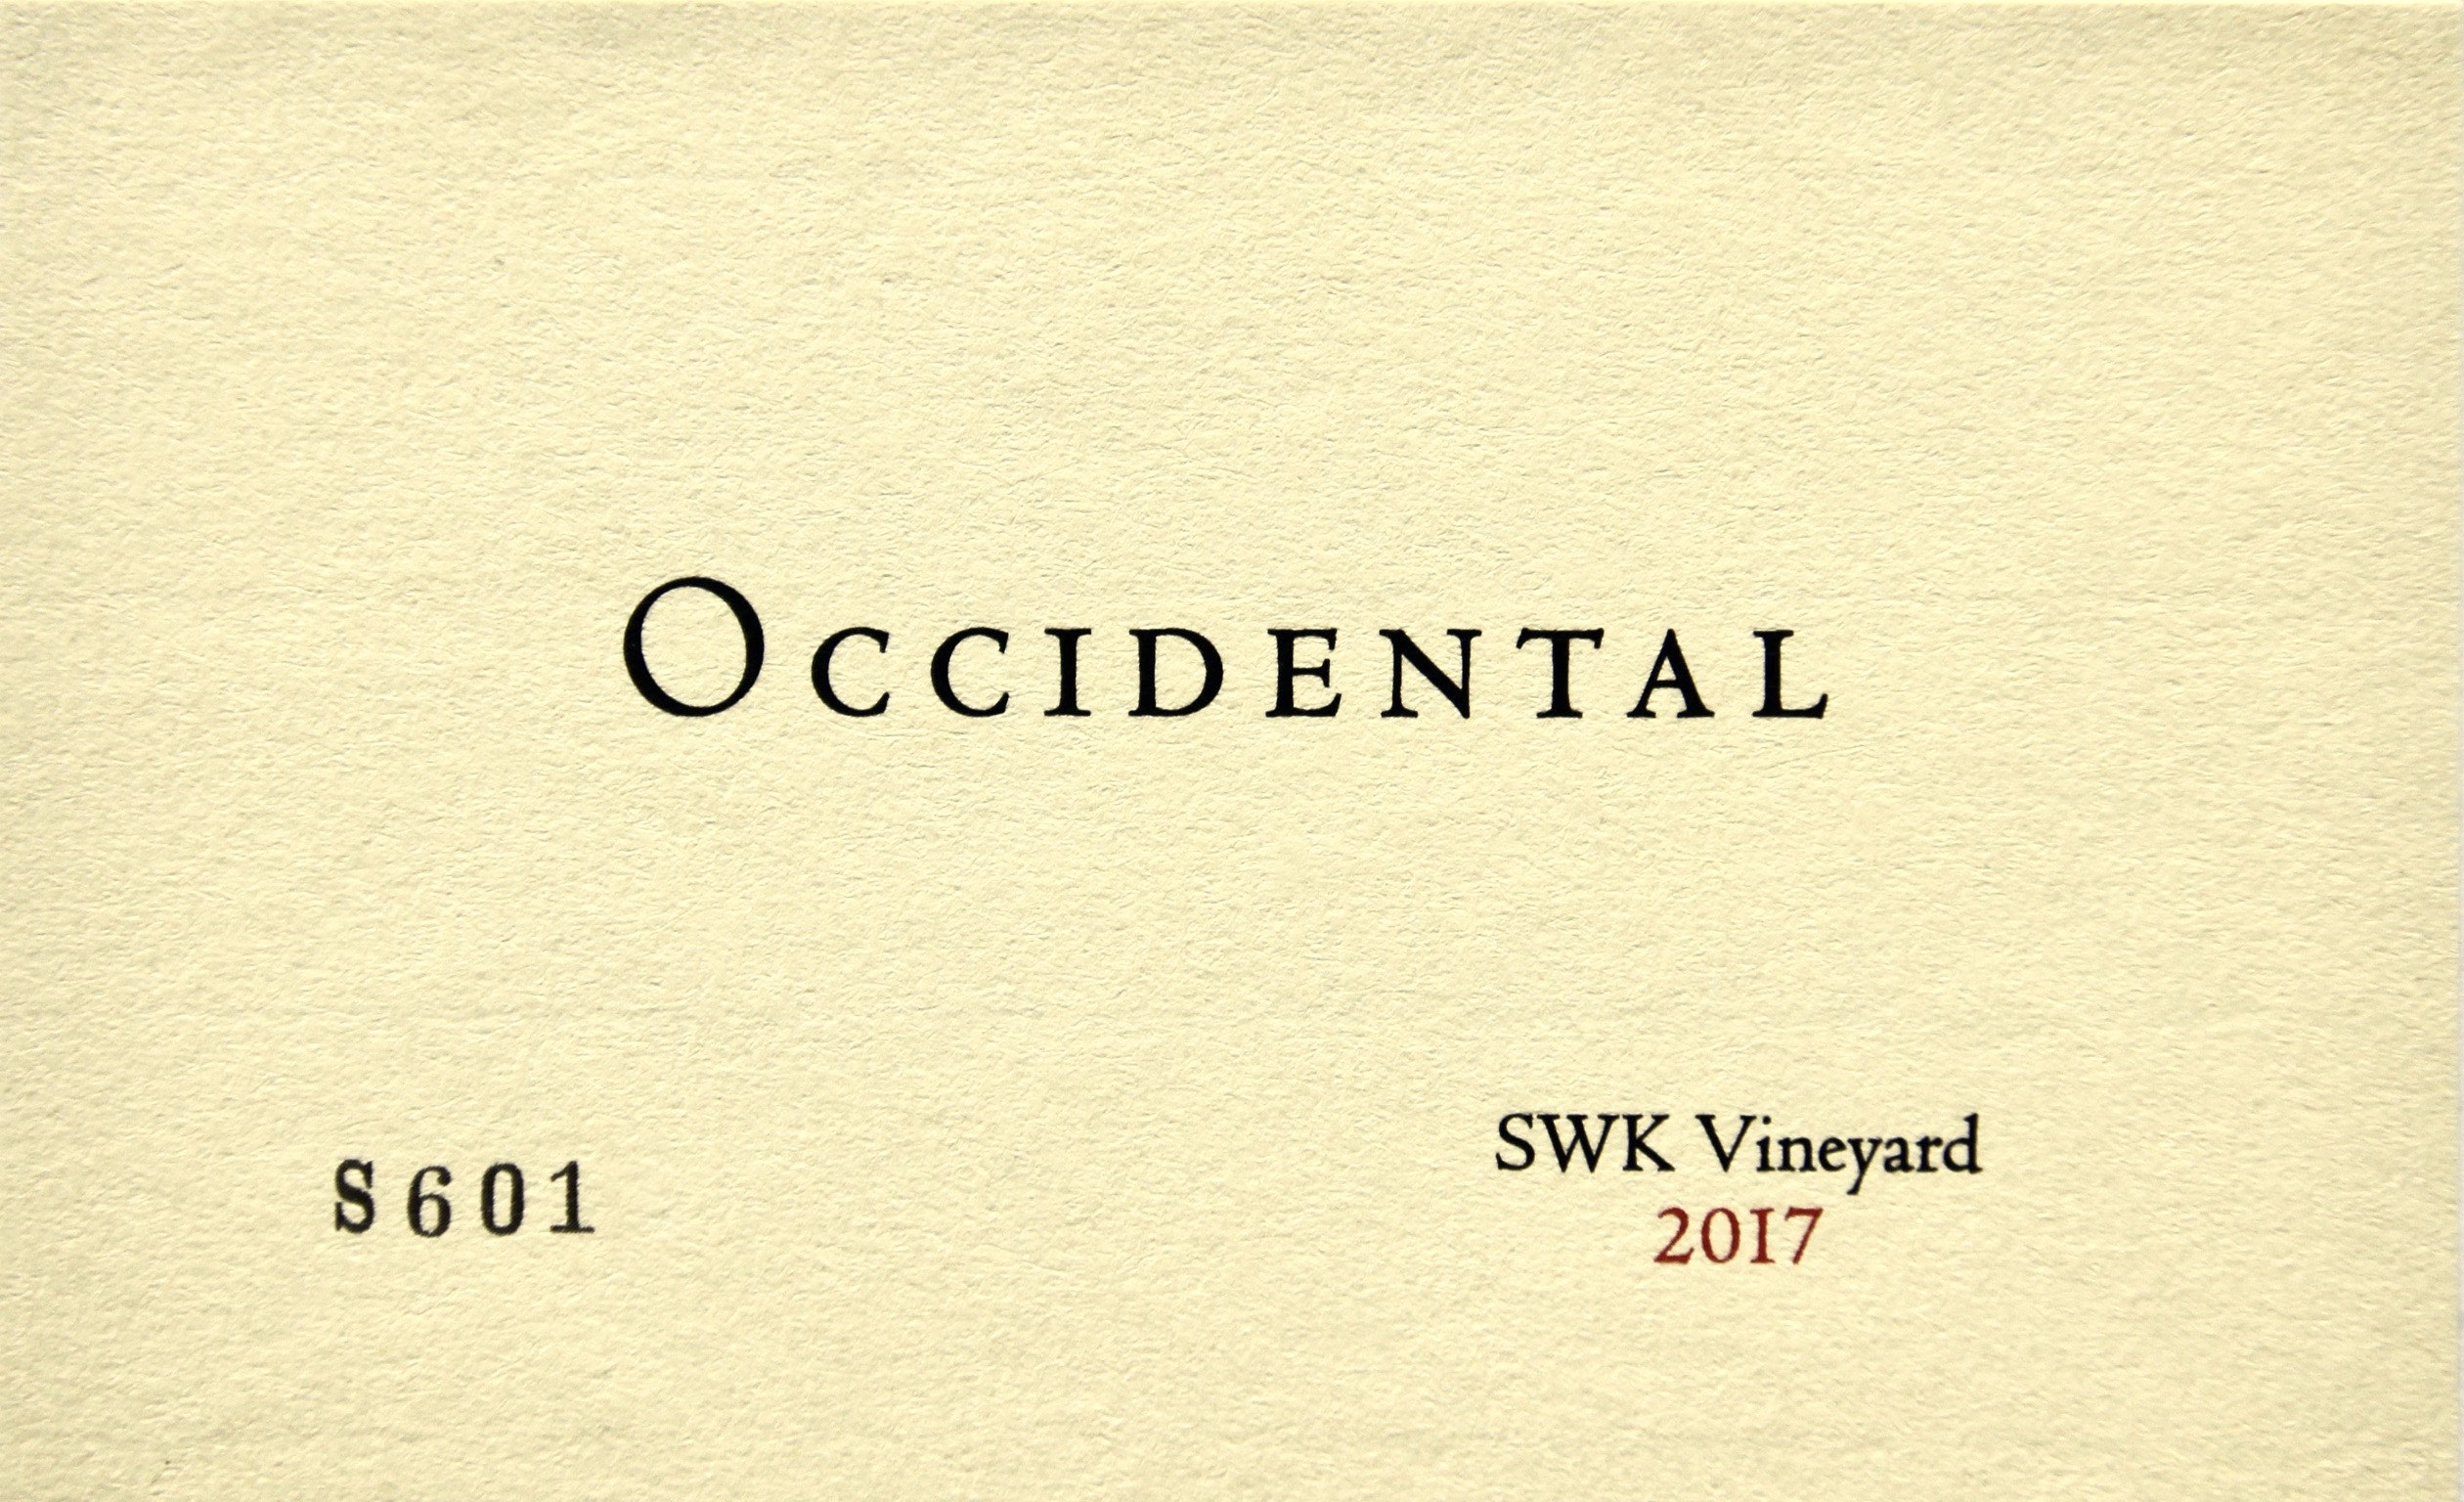 2017 Occidental Pinot Noir SWK Vineyard